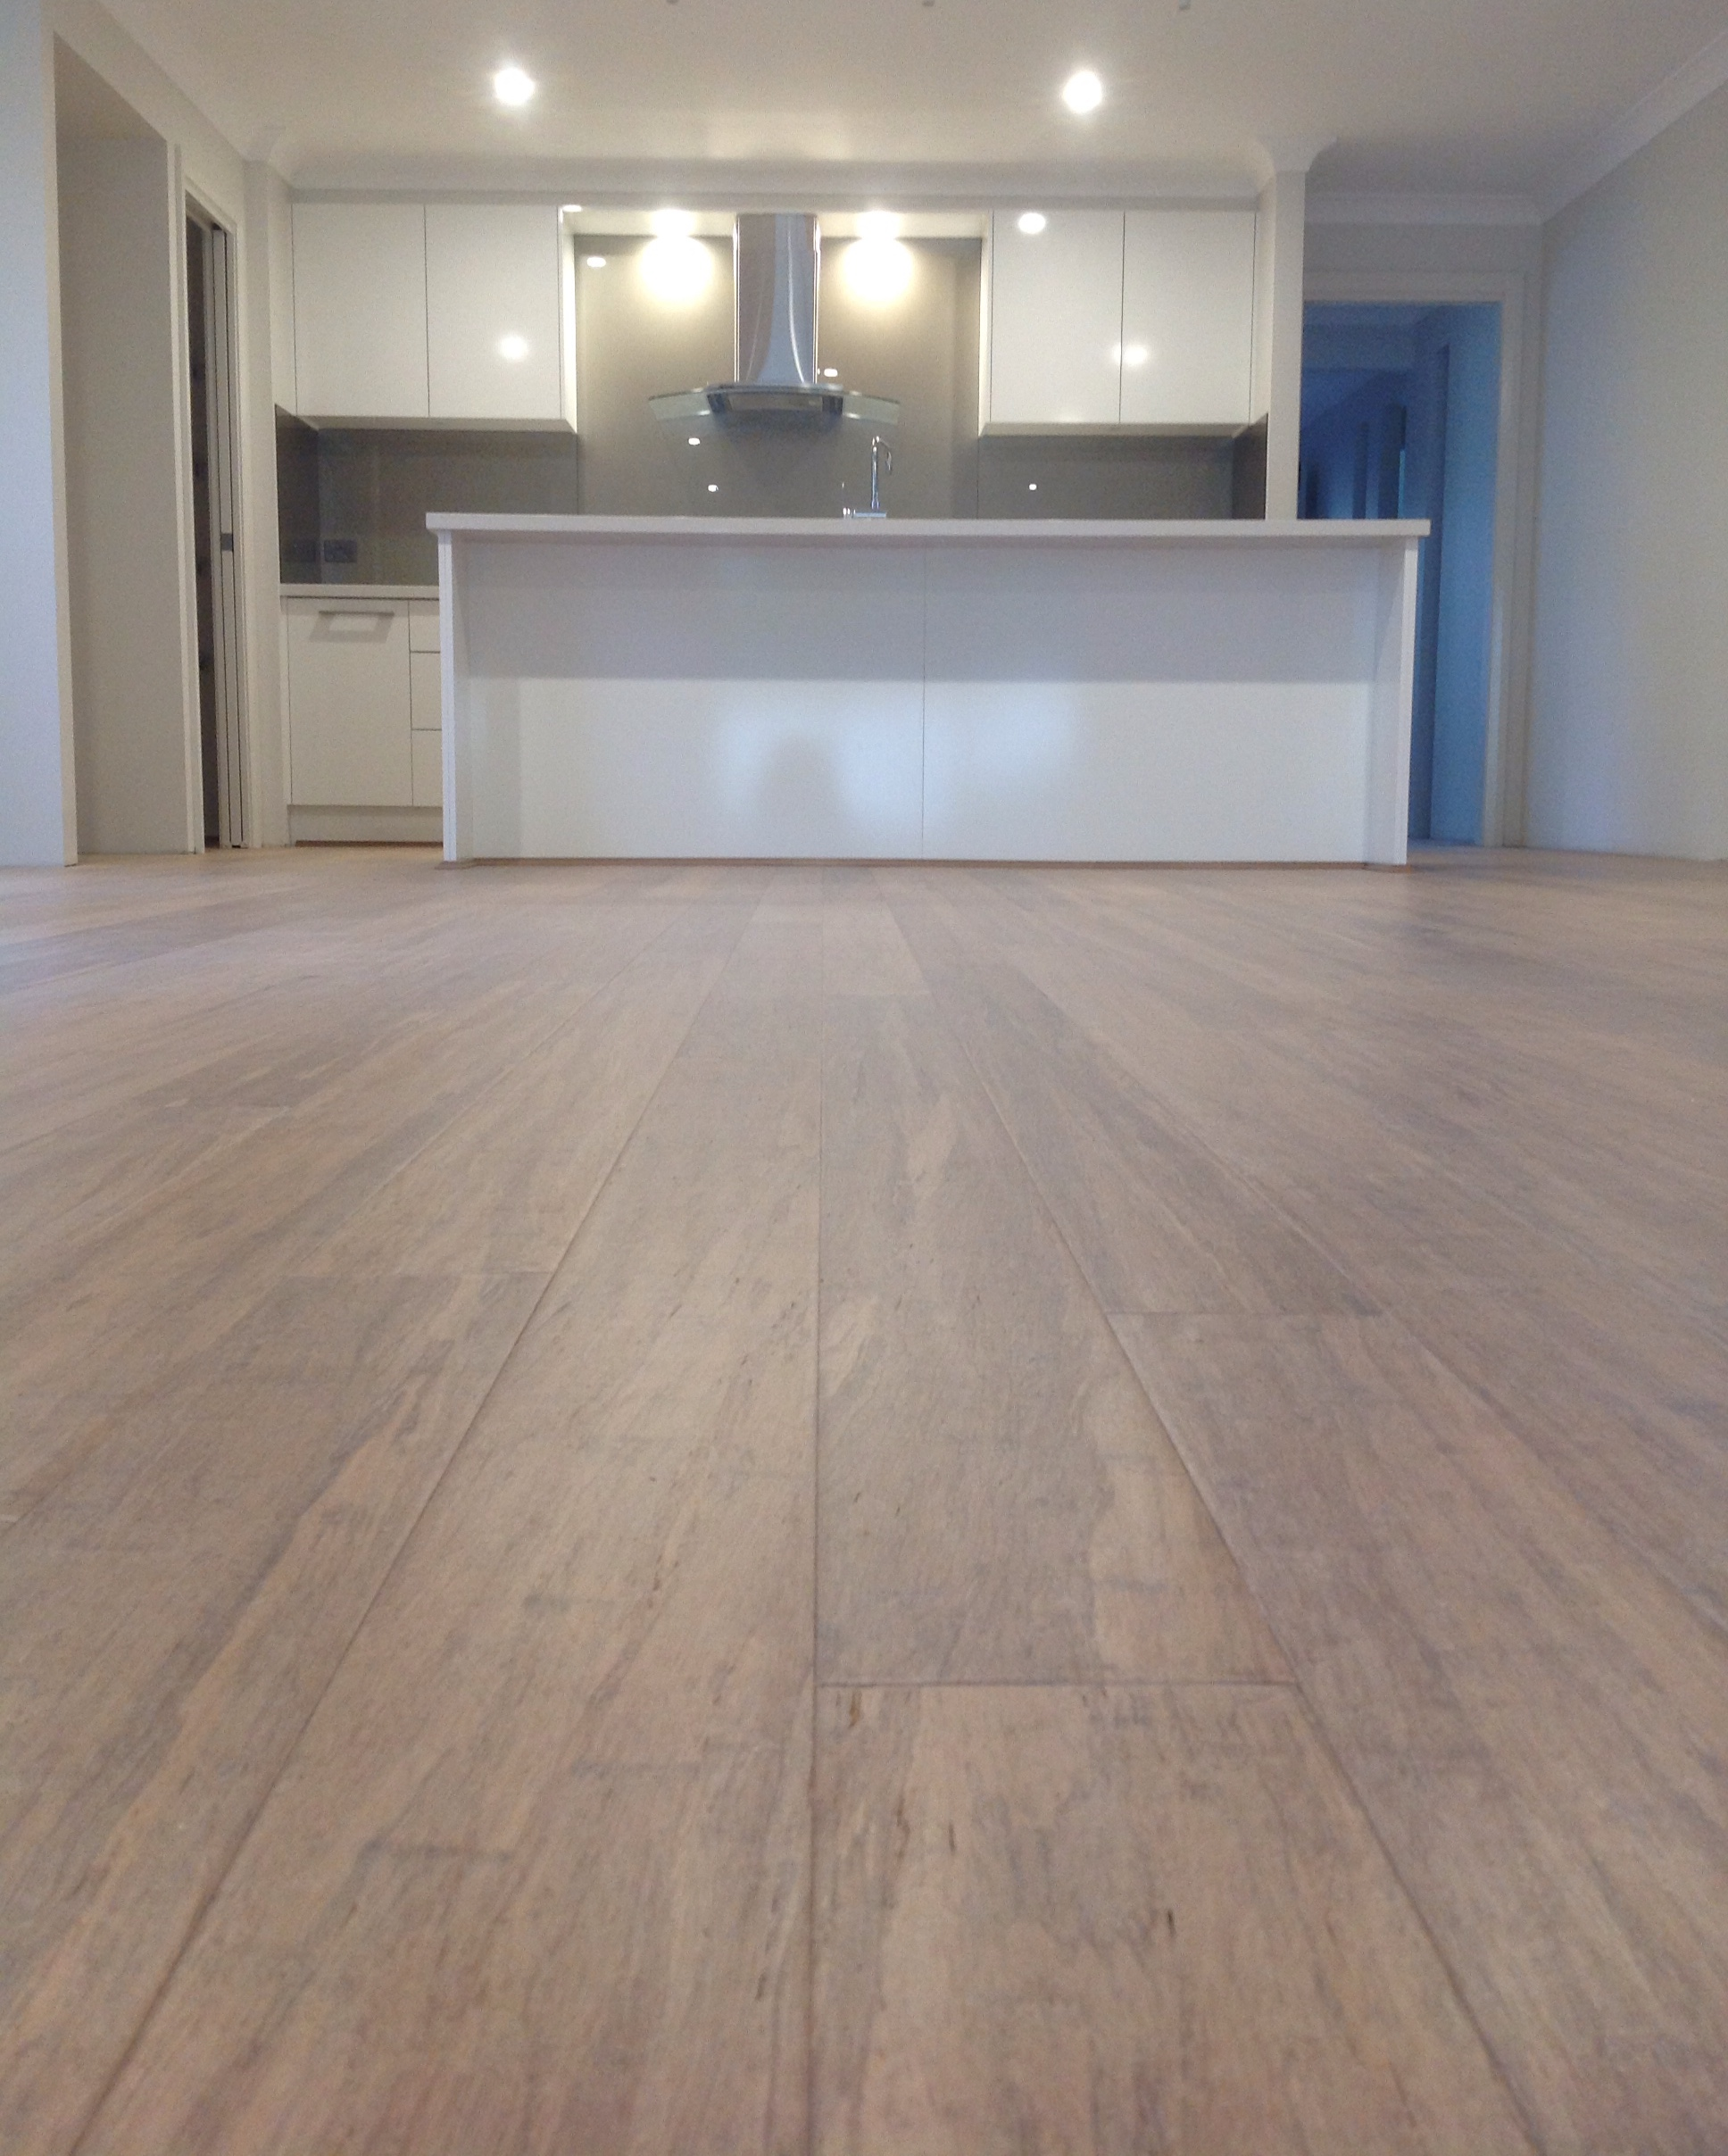 Bamboo Flooring Newcastle NSW - Timber, Laminate Floating Floors ...